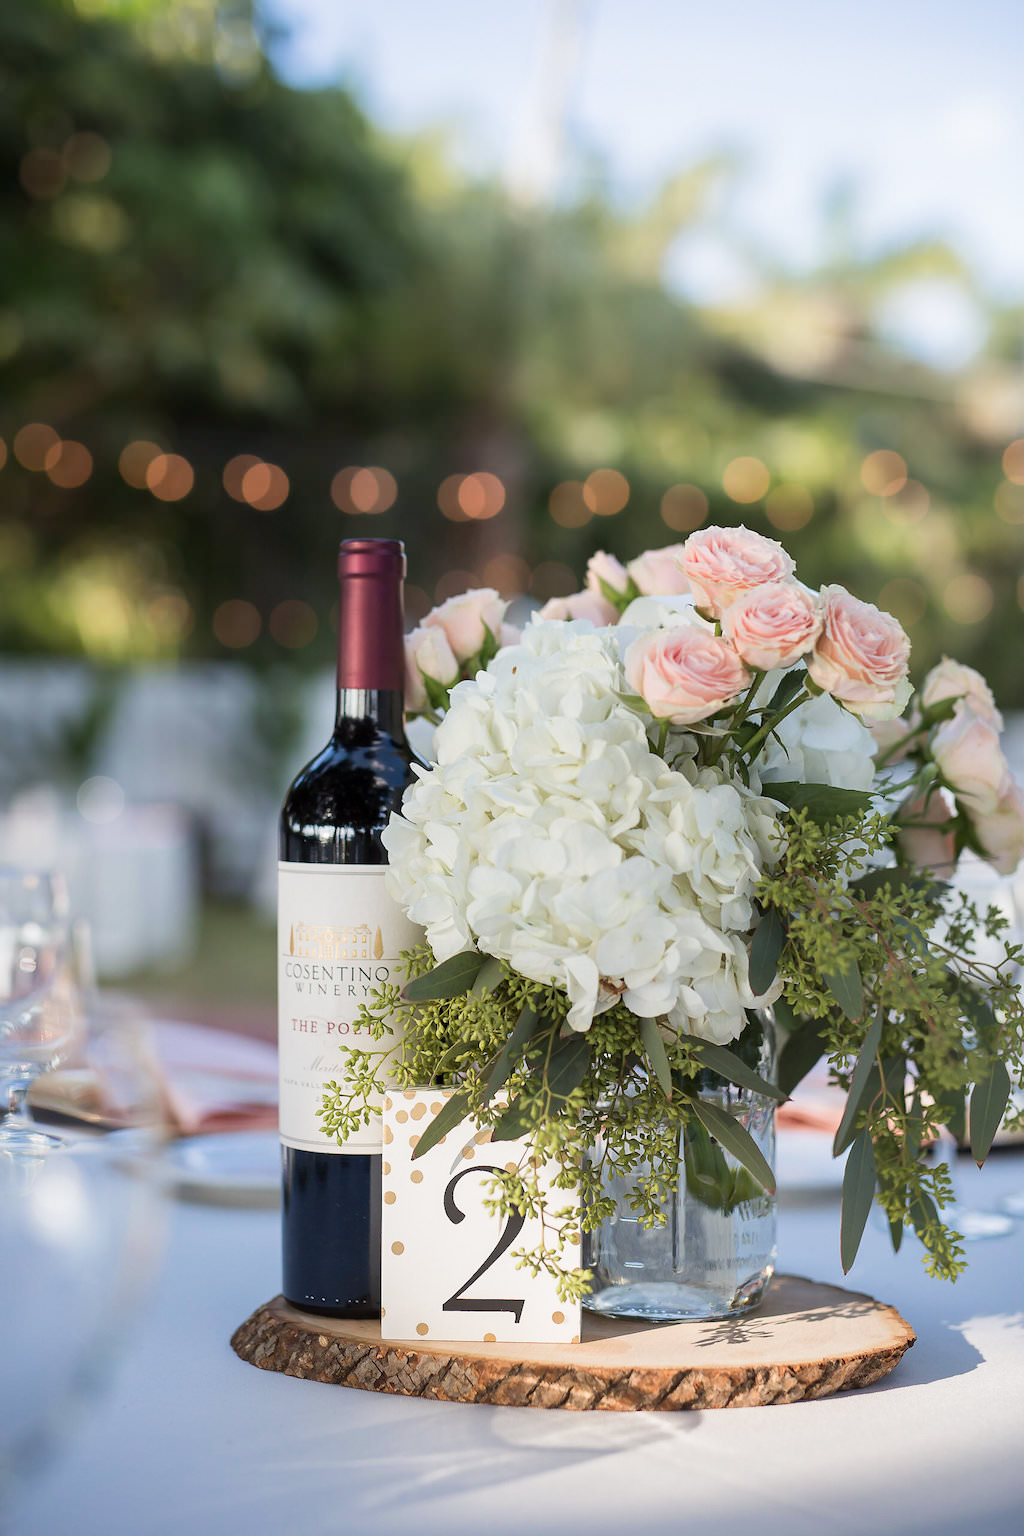 Wedding Reception Centerpiece of Wine Bottle Polka Dotted Number Sign Hydrangeas, Pink Roses and Greenery in Mason Jar on Top of Rustic Wood Slab on Grey Linen